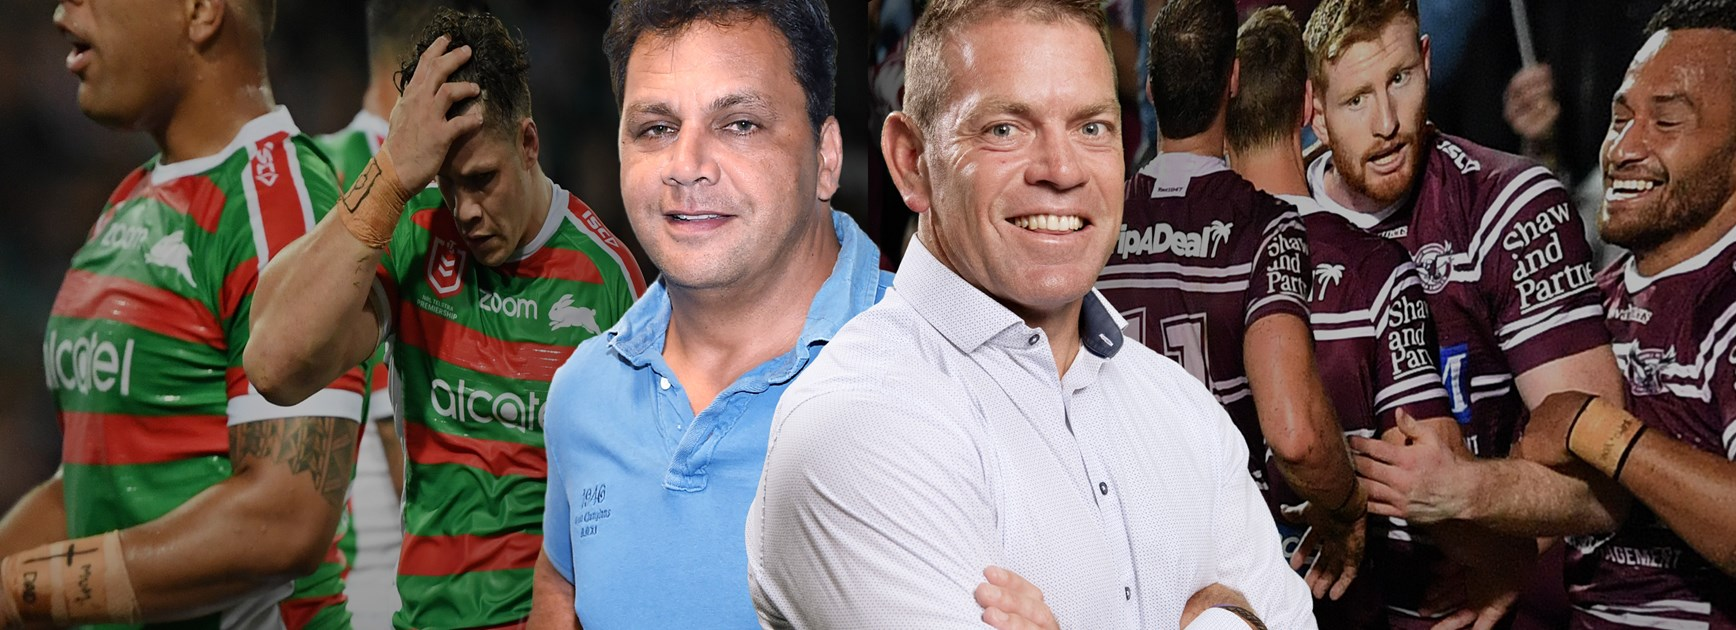 Rabbitohs v Sea Eagles: Guest coaches Kimmorley and Renouf go head to head